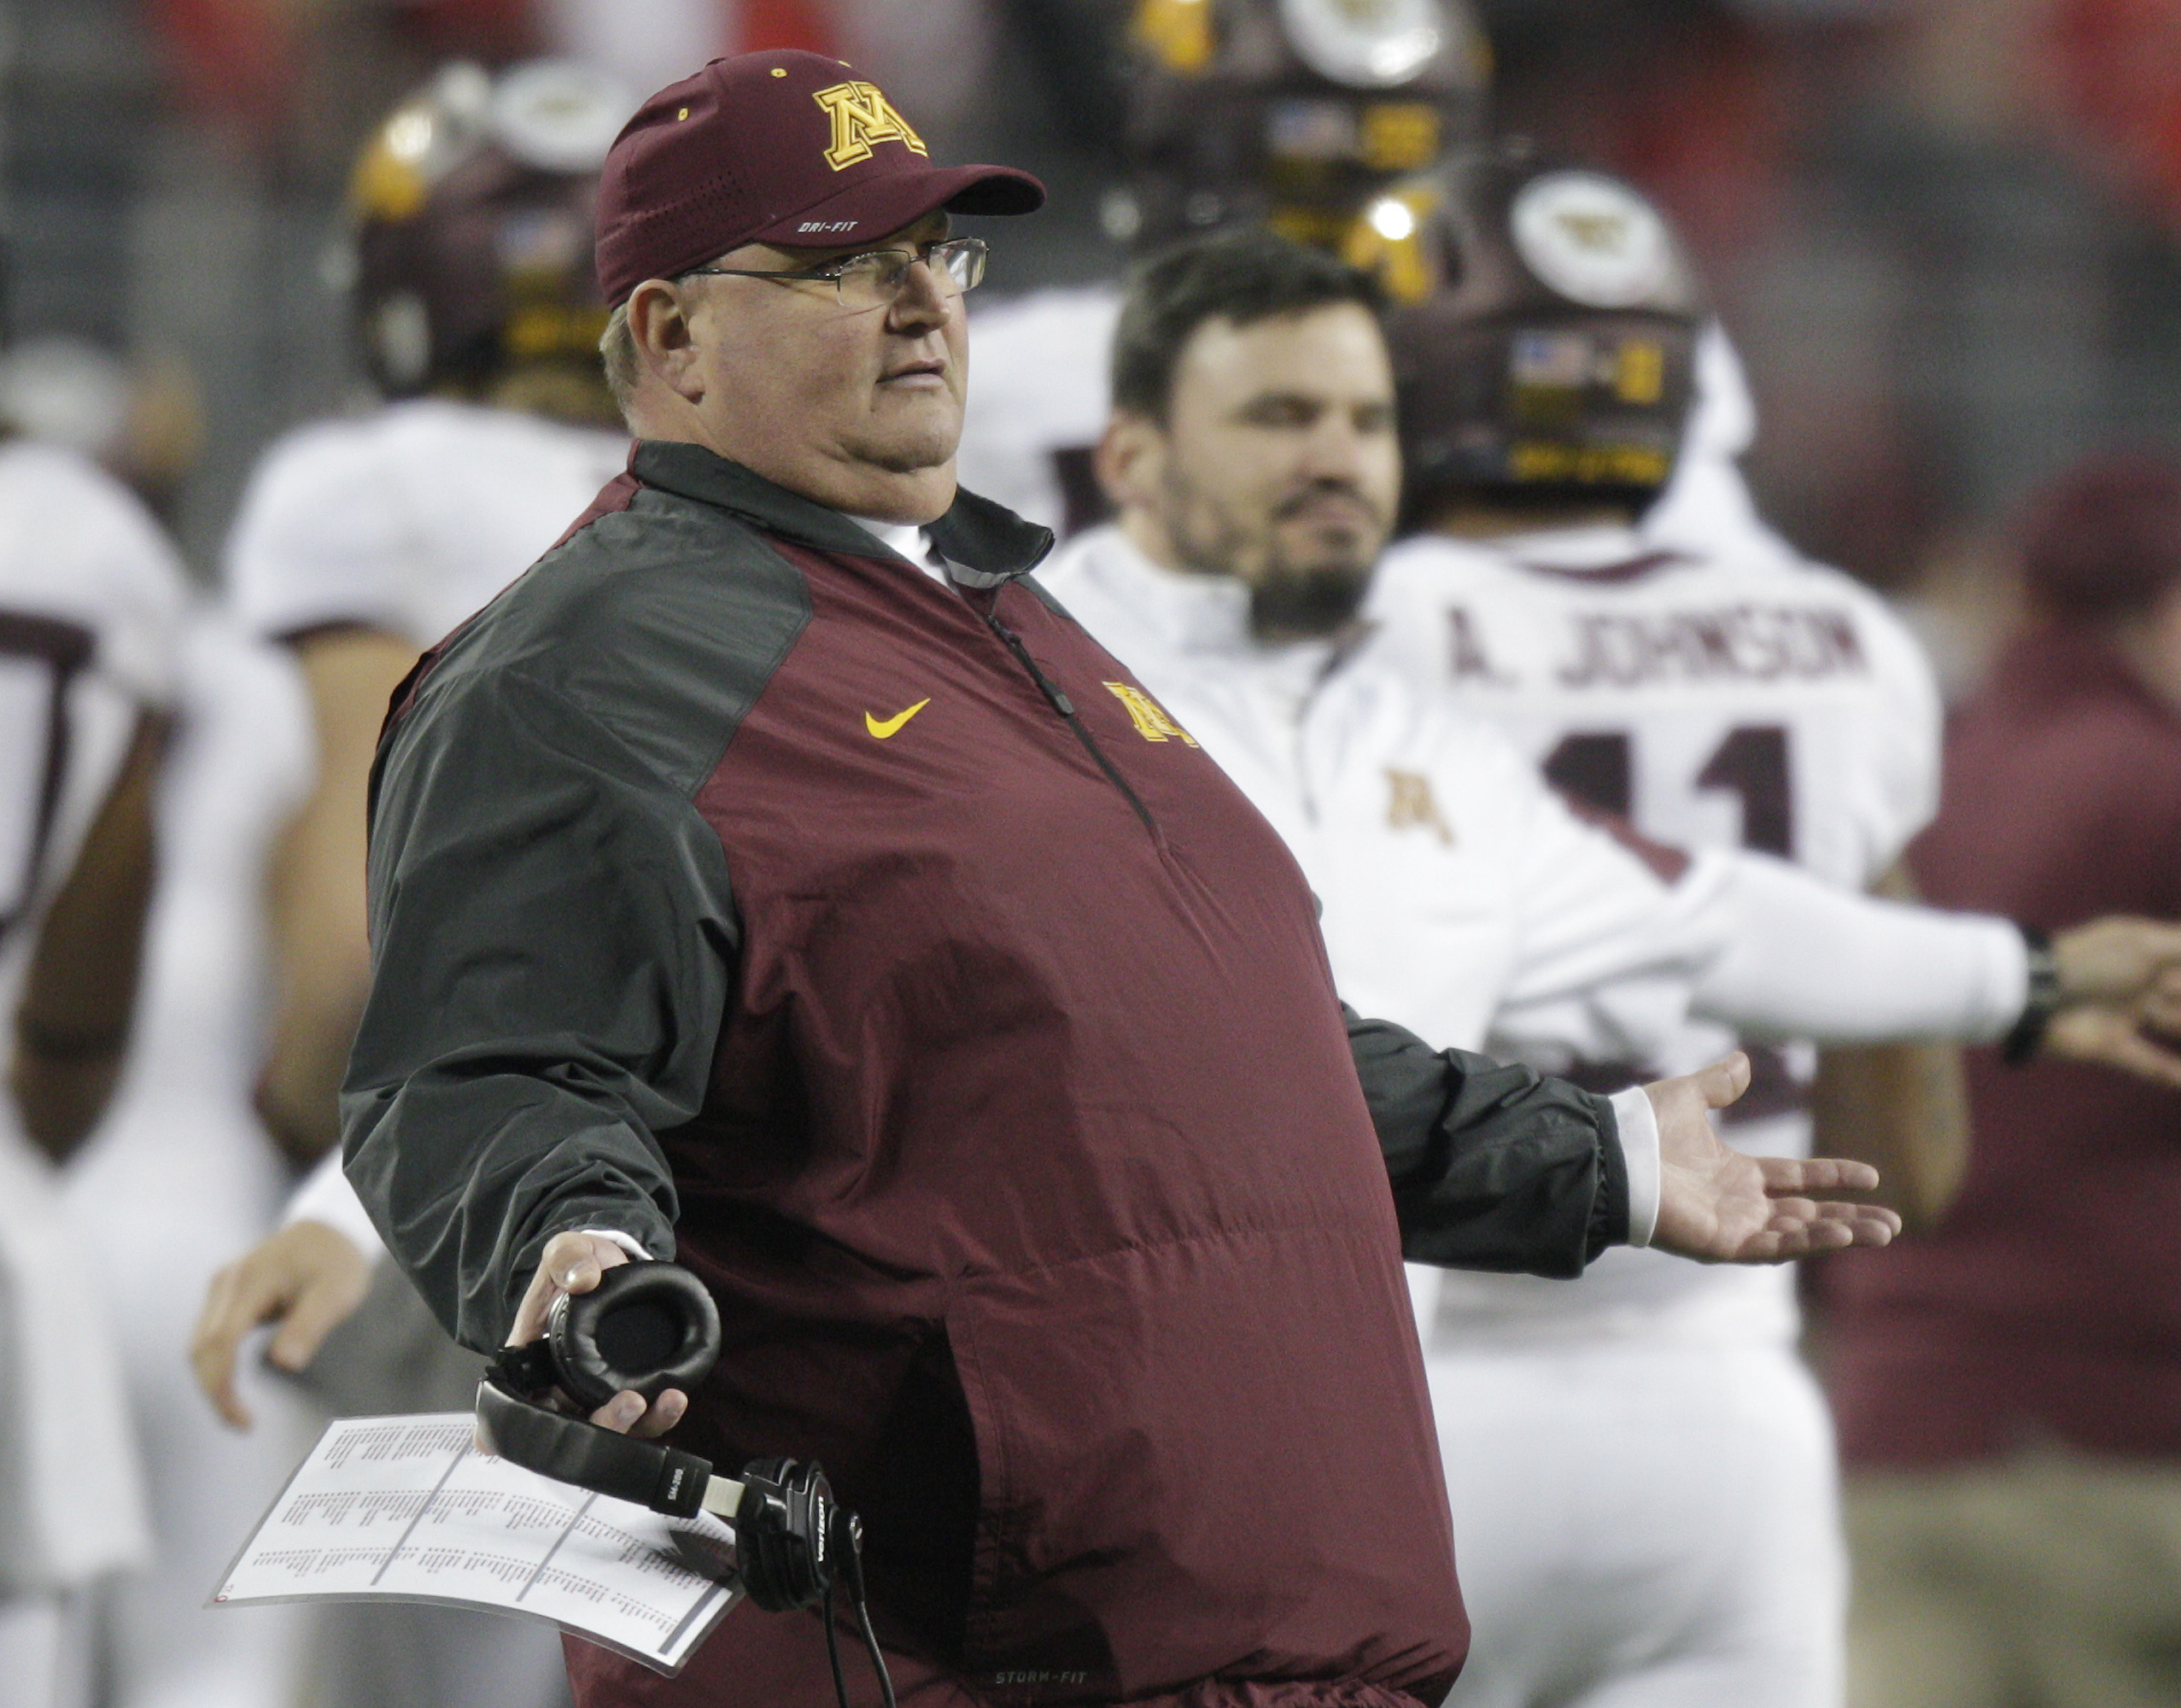 Minnesota interim head coach Tracy Claeys questions a referee during the second quarter of an NCAA college football game against Ohio State Saturday, Nov. 7, 2015, in Columbus, Ohio. (AP Photo/Jay LaPrete)